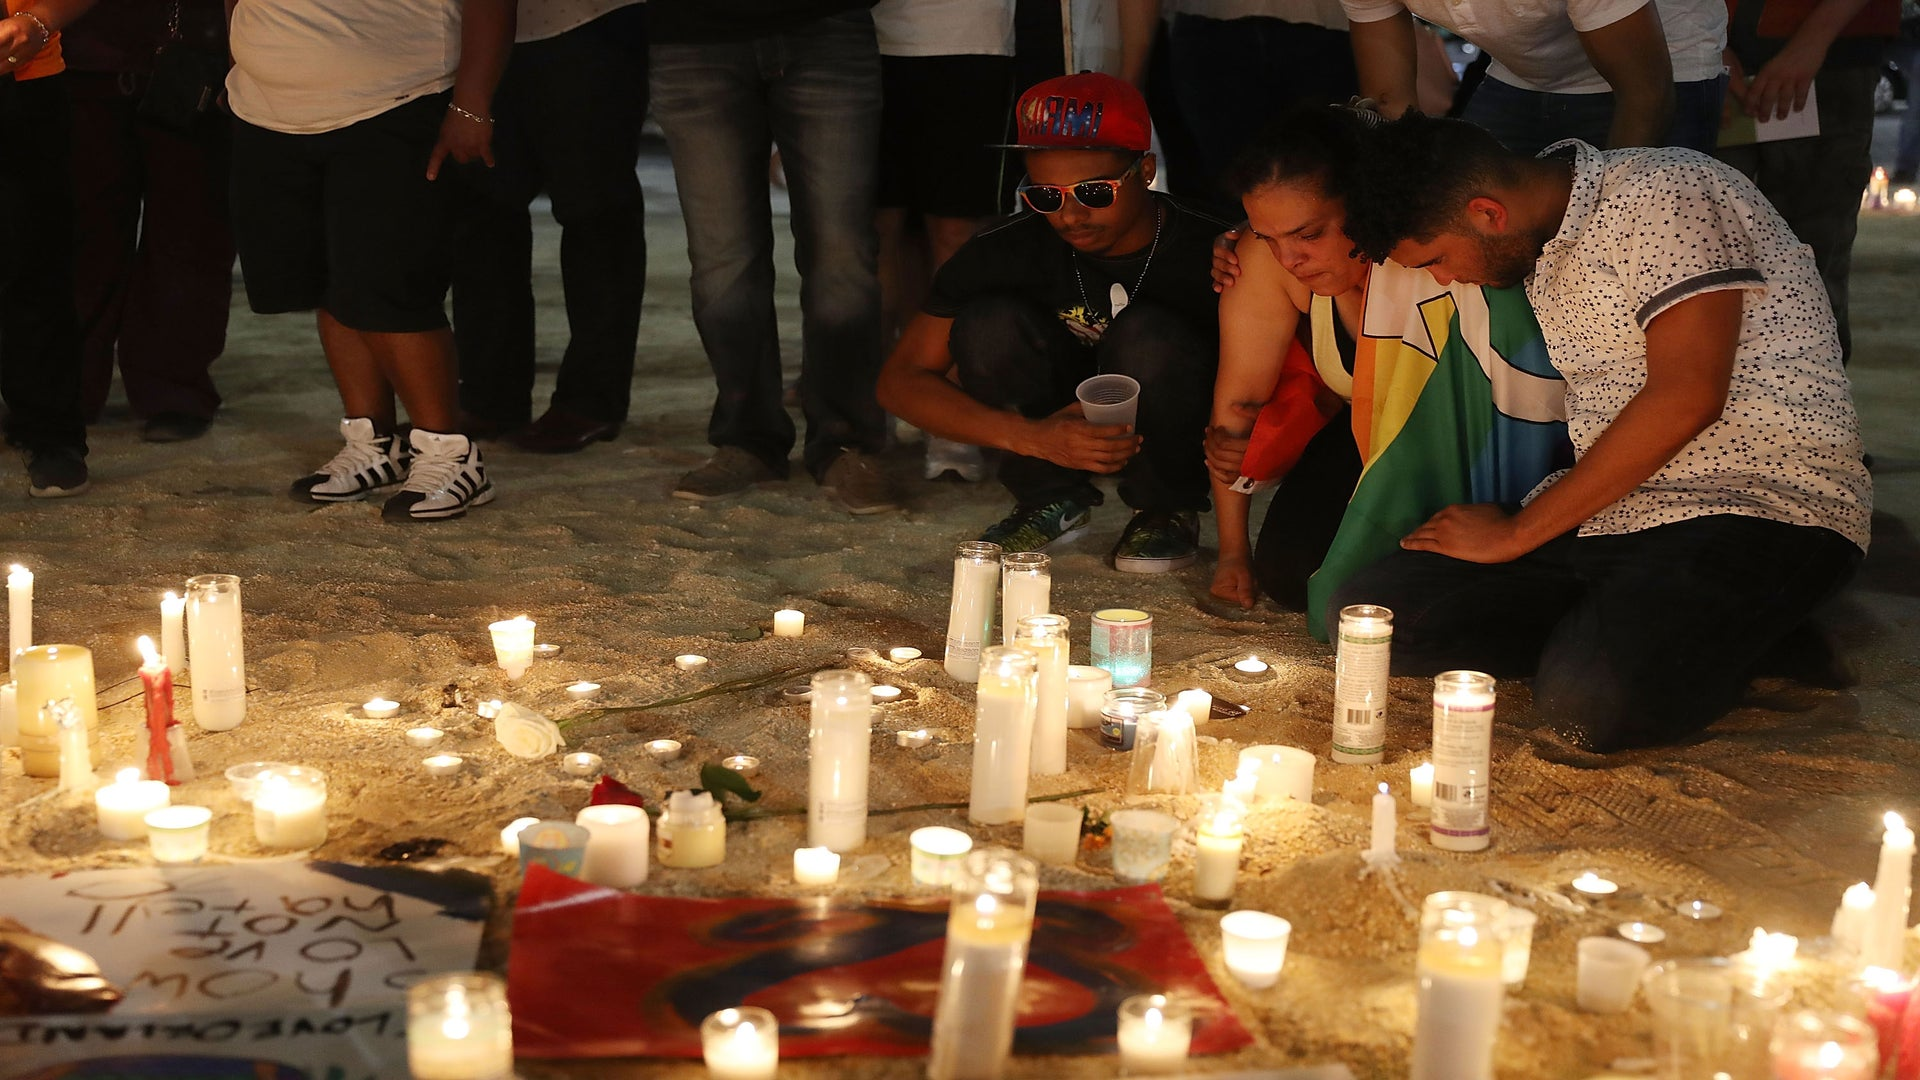 Here's Everything We Know About the Orlando Shooting